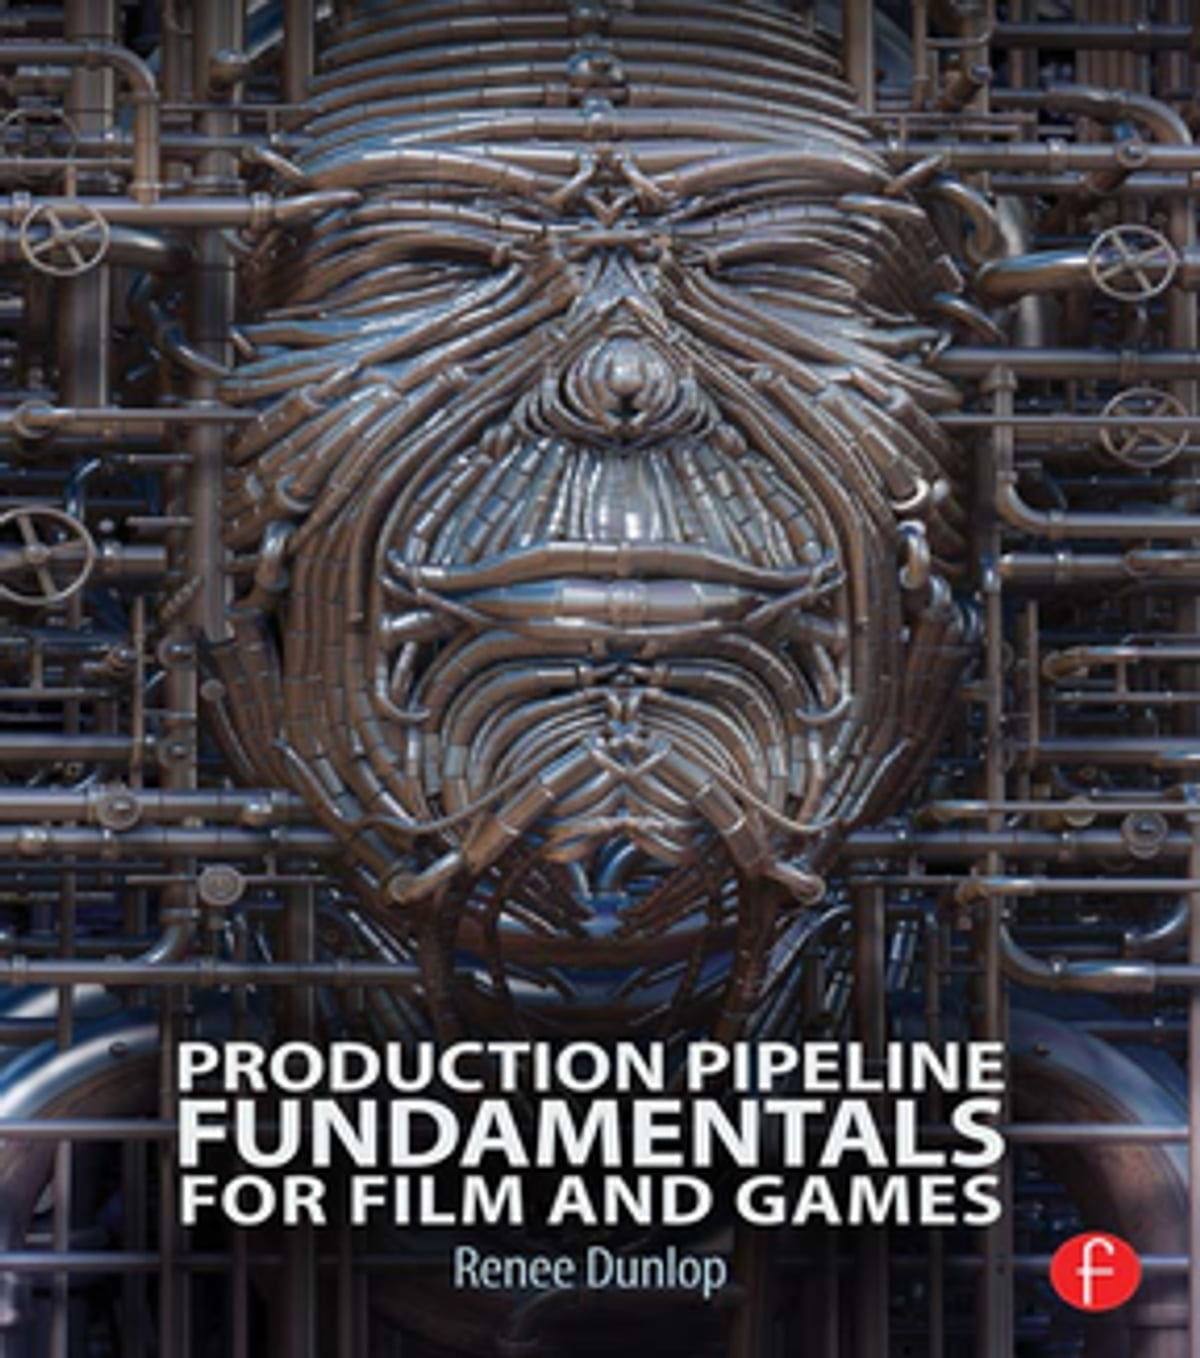 Production Pipeline Fundamentals for Film and Games eBook by Renee Dunlop -  9781317936220   Rakuten Kobo